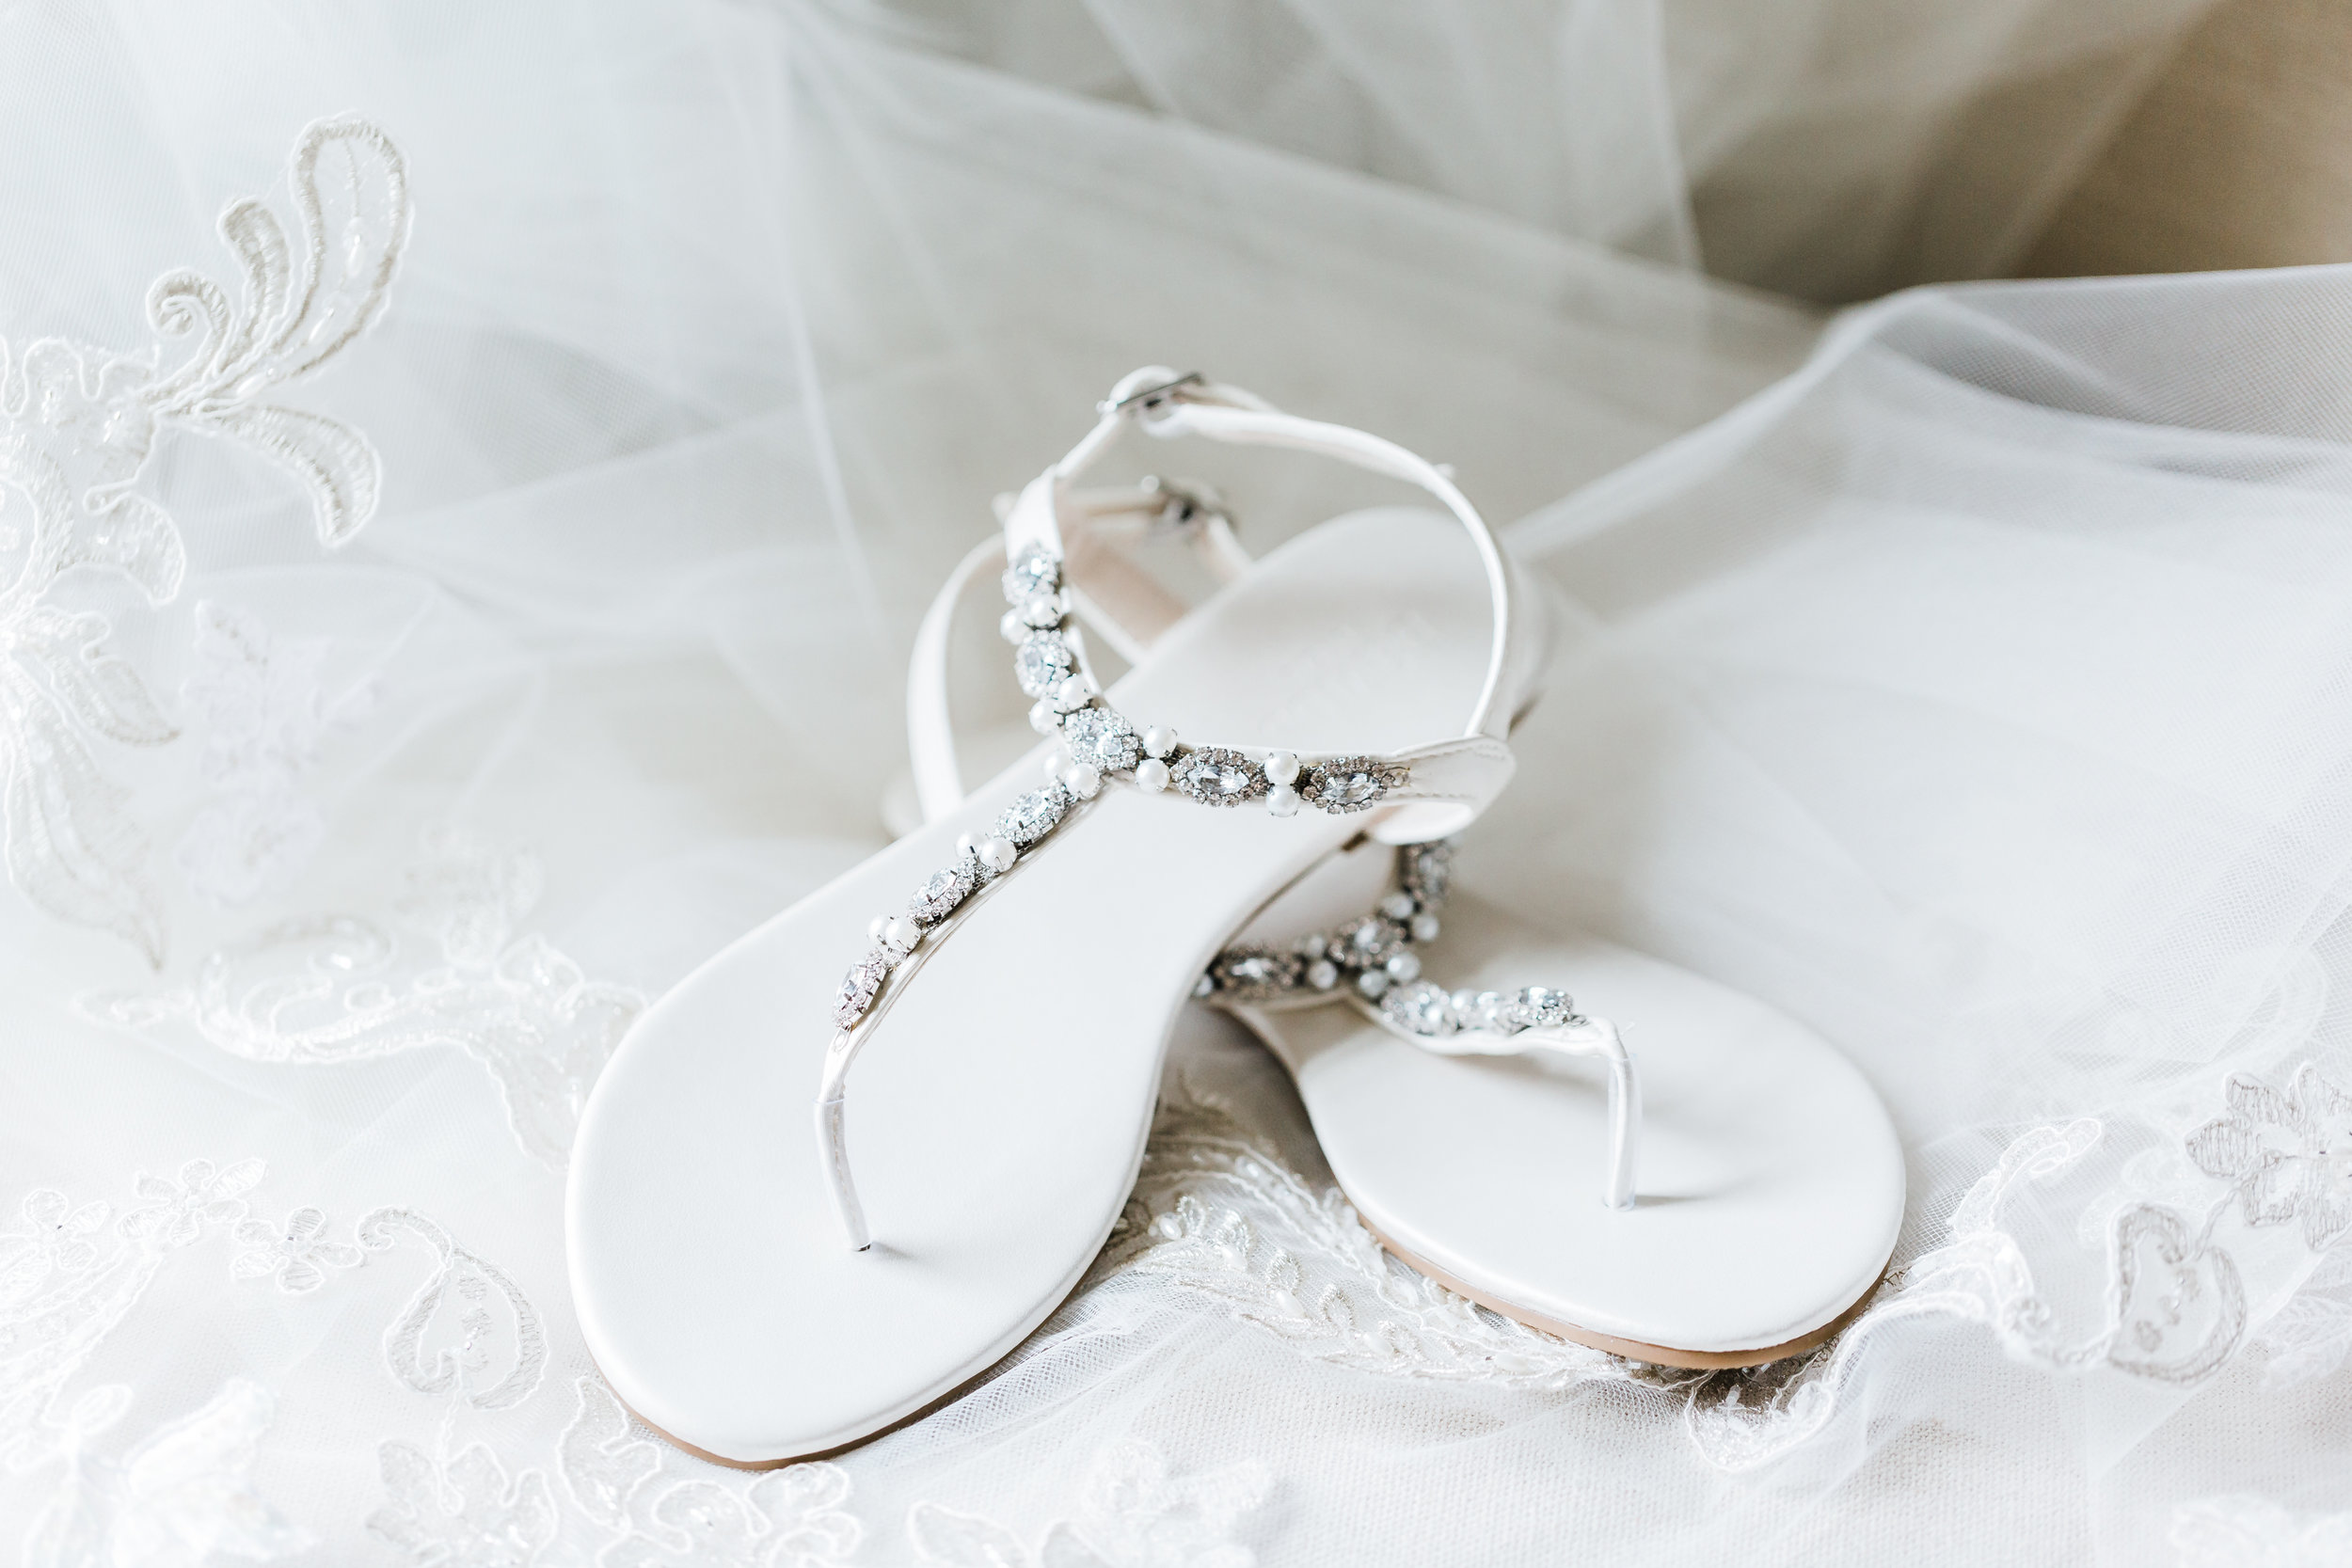 bridal shoes and details